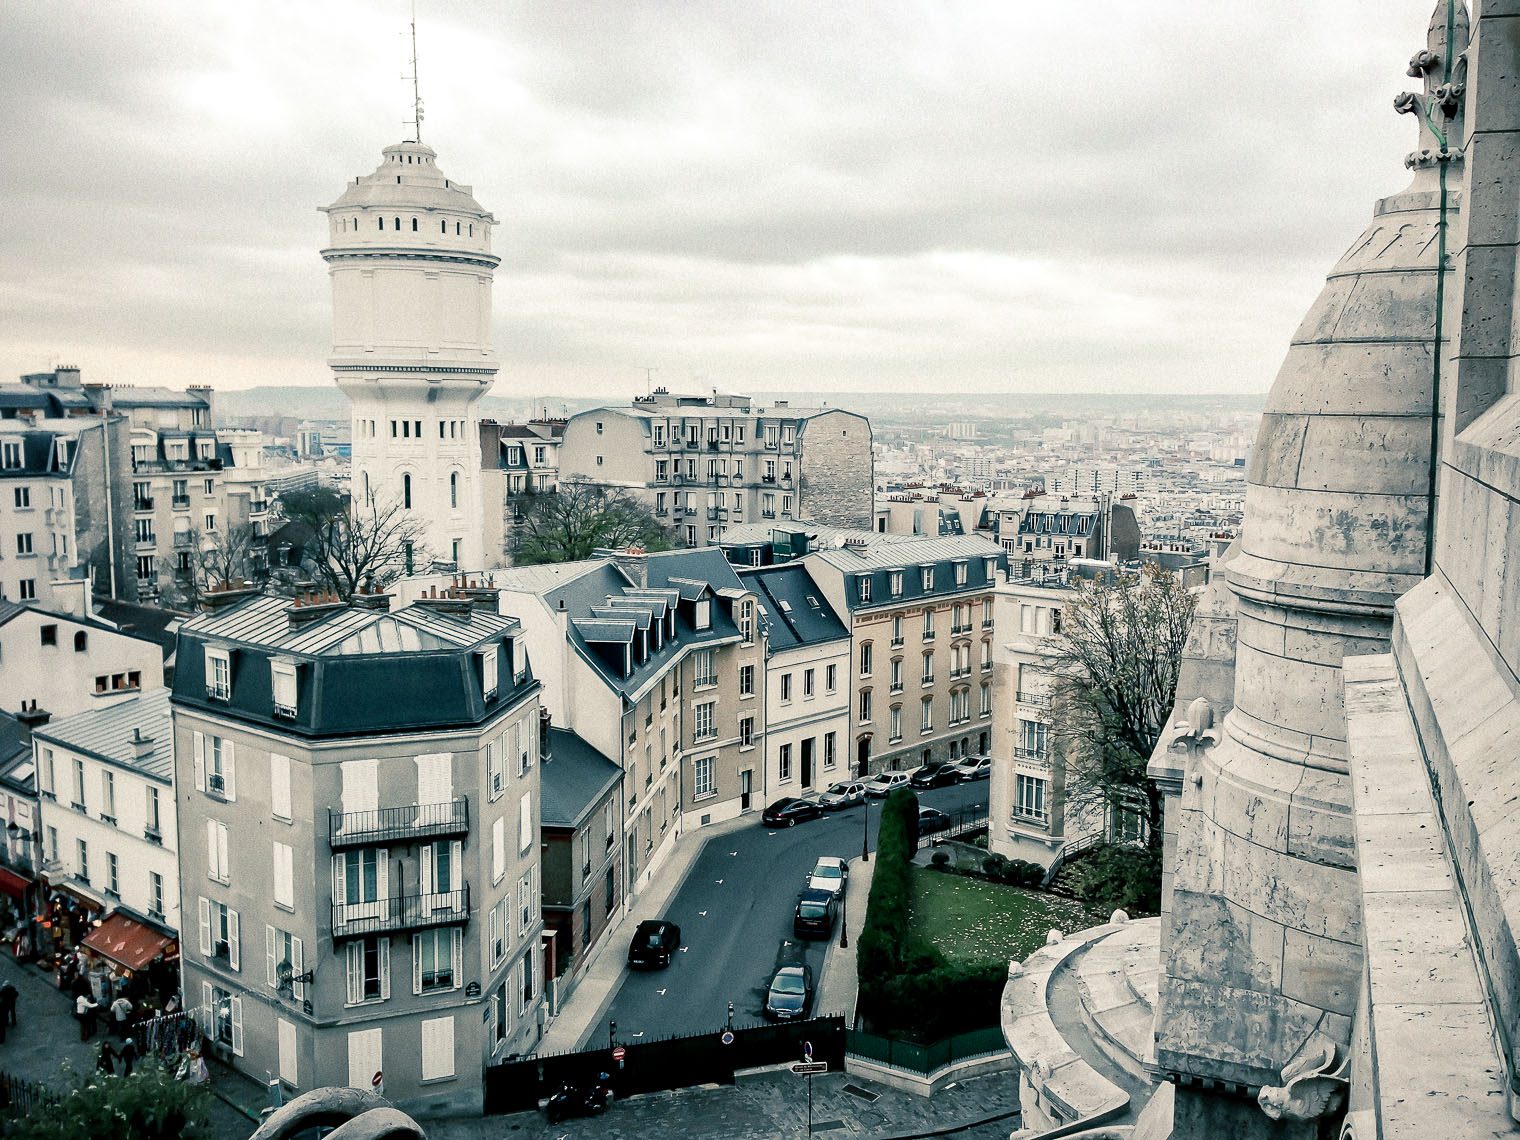 030_Paris by iPhone_Sacre Coeur.jpg